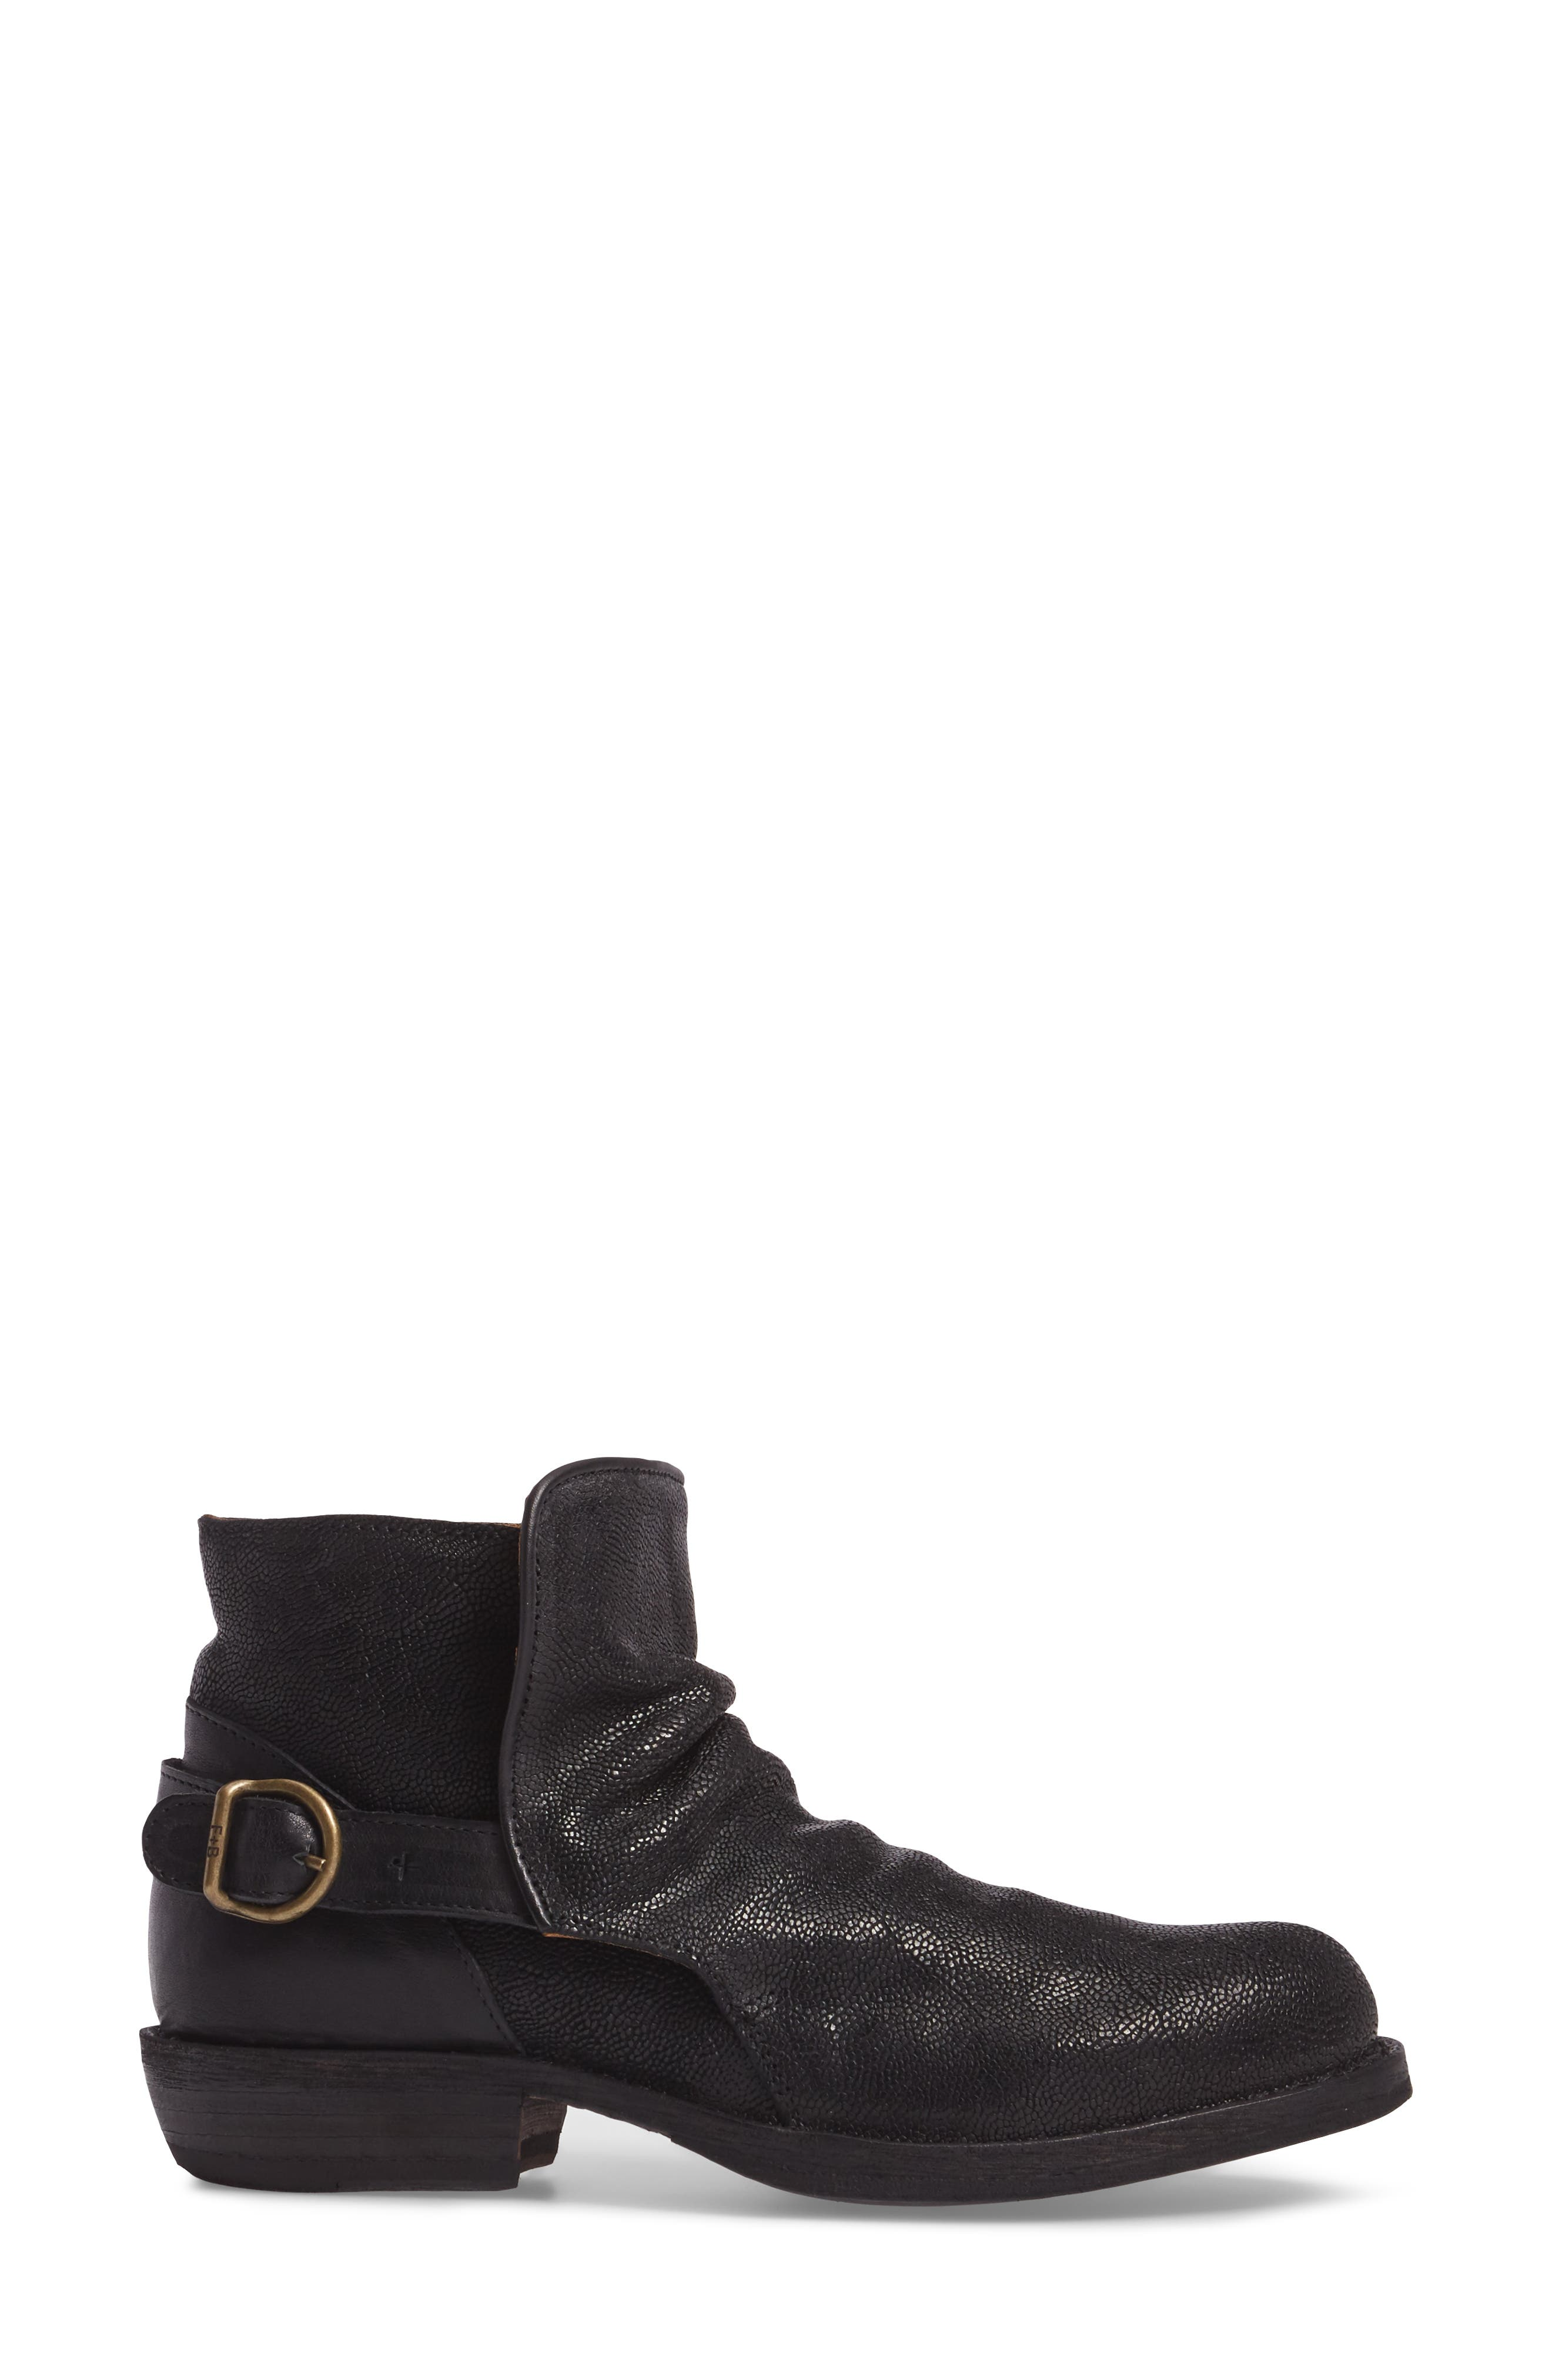 Alternate Image 3  - Fiorentini + Baker 'Carol' Ankle Boot (Women)